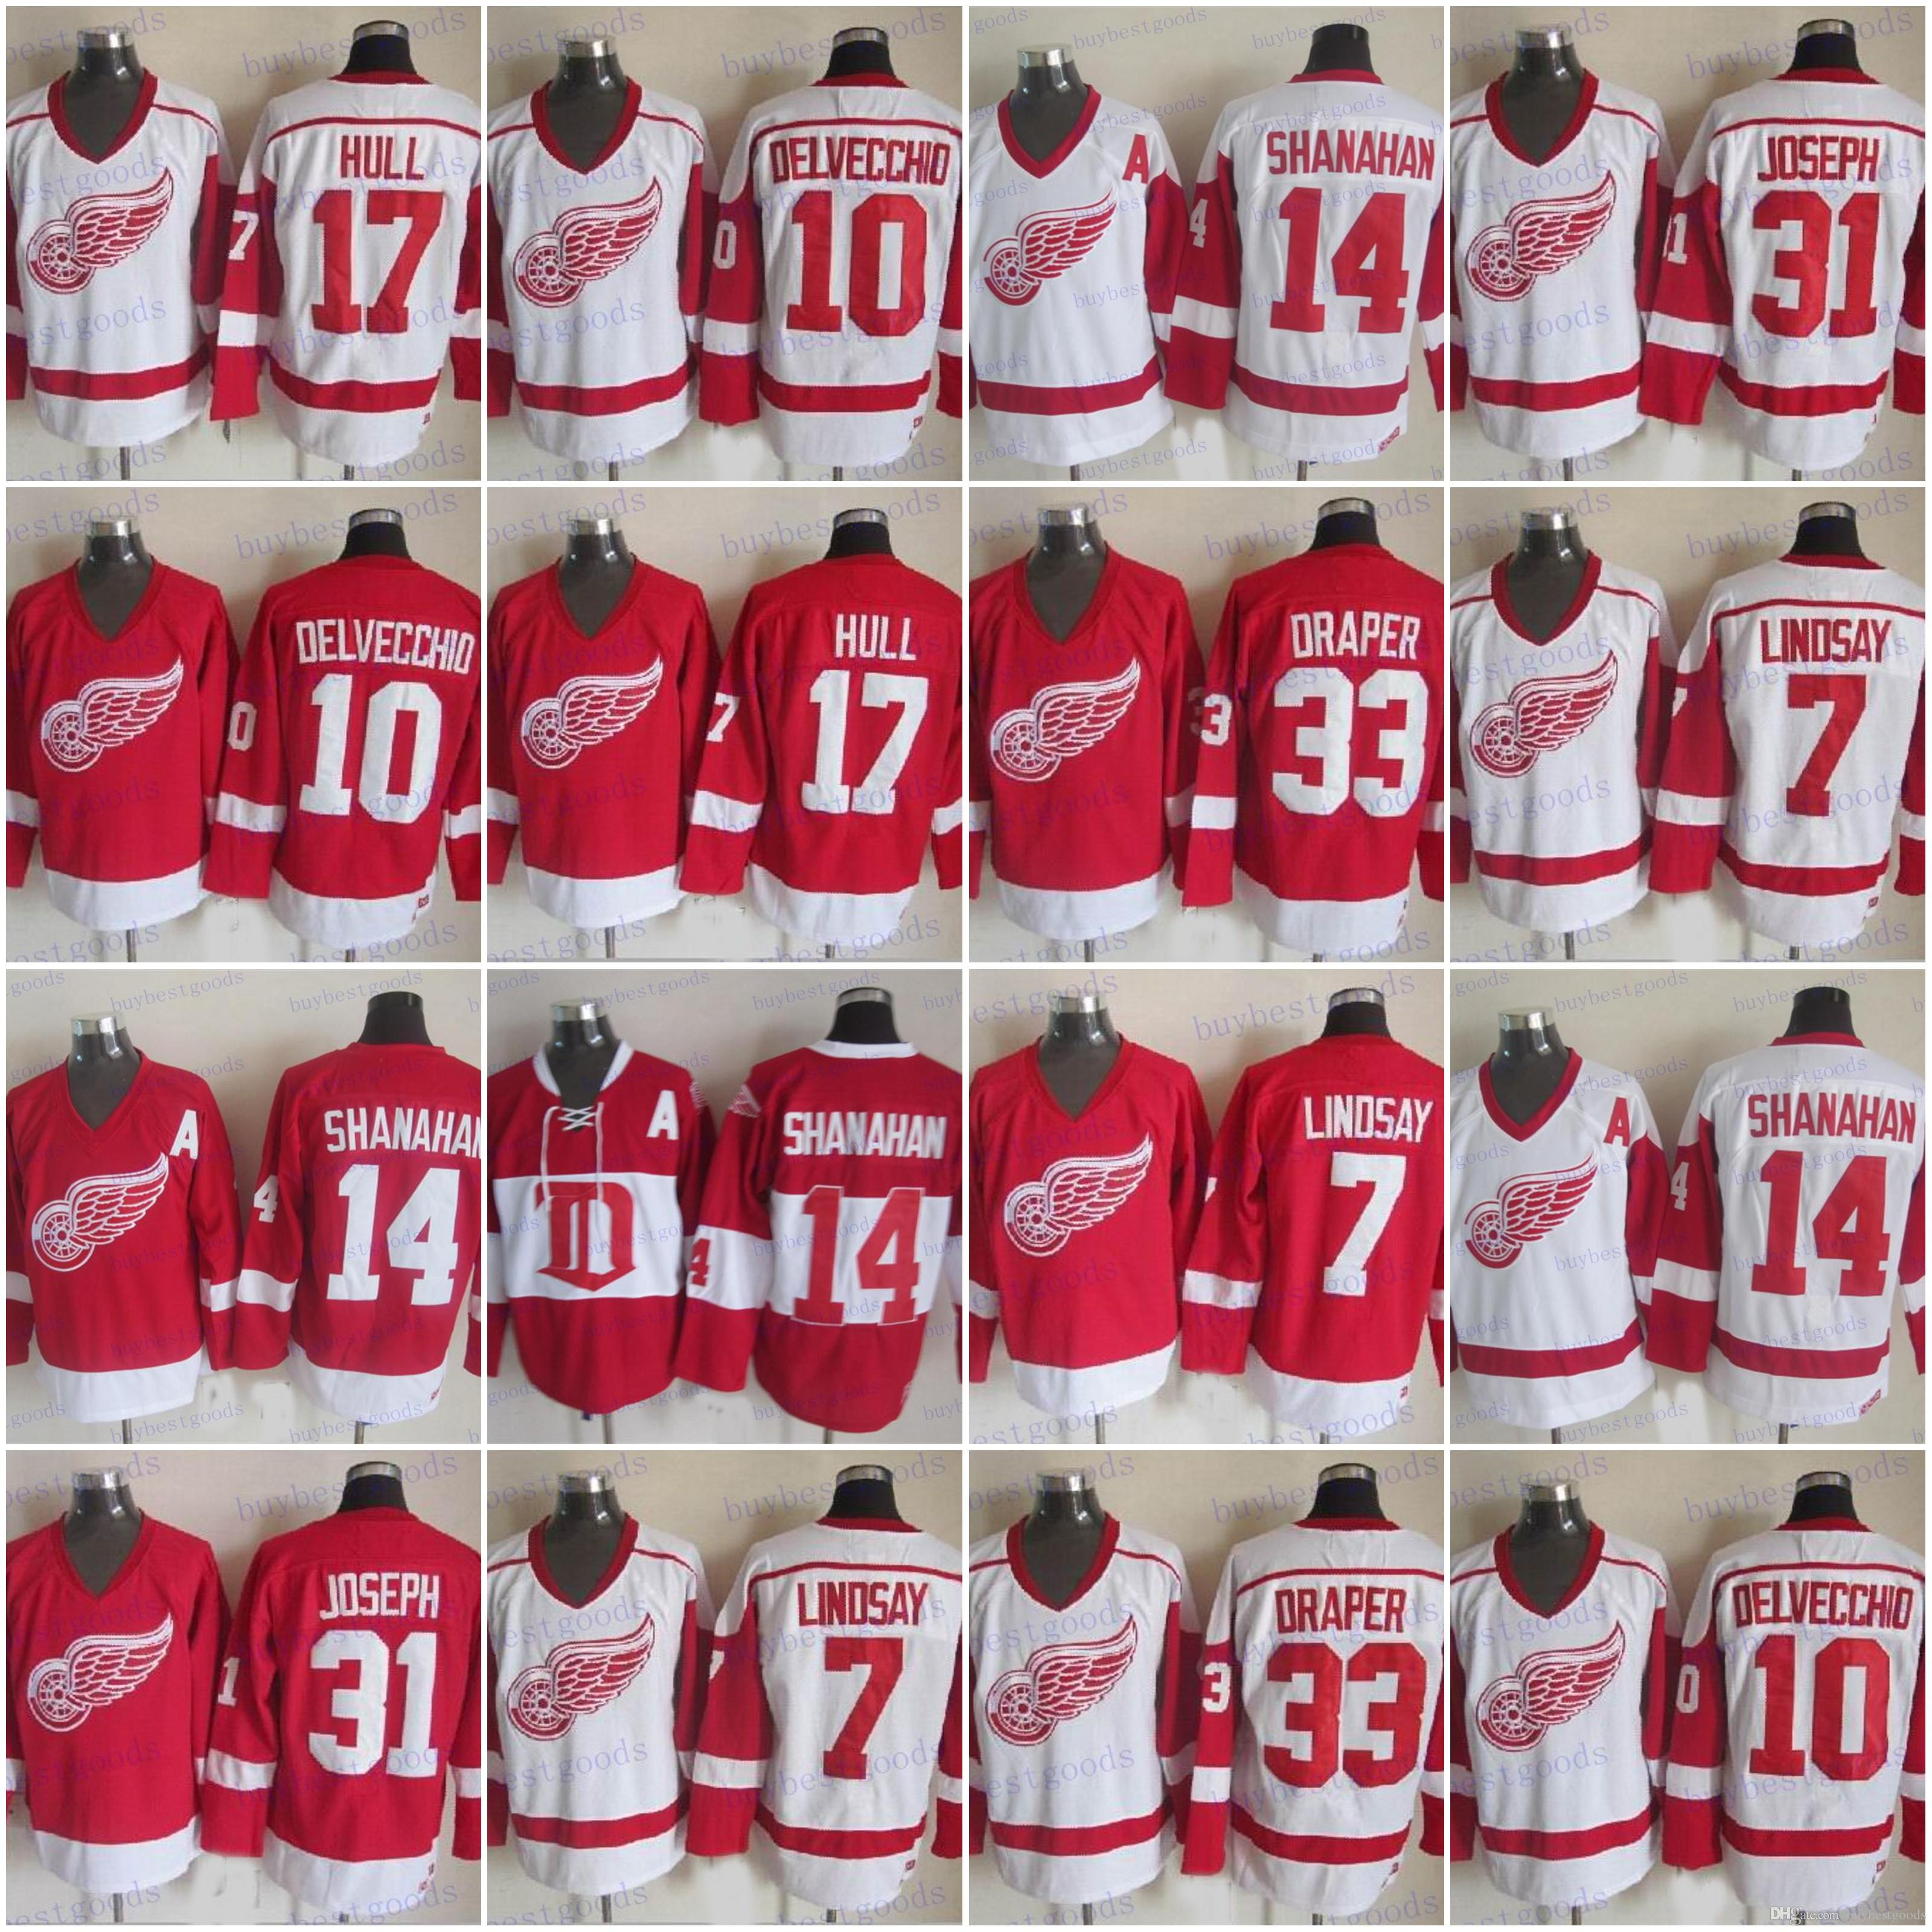 8776bf080 2019 CCM Detroit Red Wings 7 Ted Lindsay 33 Kris Draper 17 Hull 10 Alex  Delvecchio 31 Curtis Joseph 14 Brendan Shanahan Hockey Jersey From  Buybestgoods